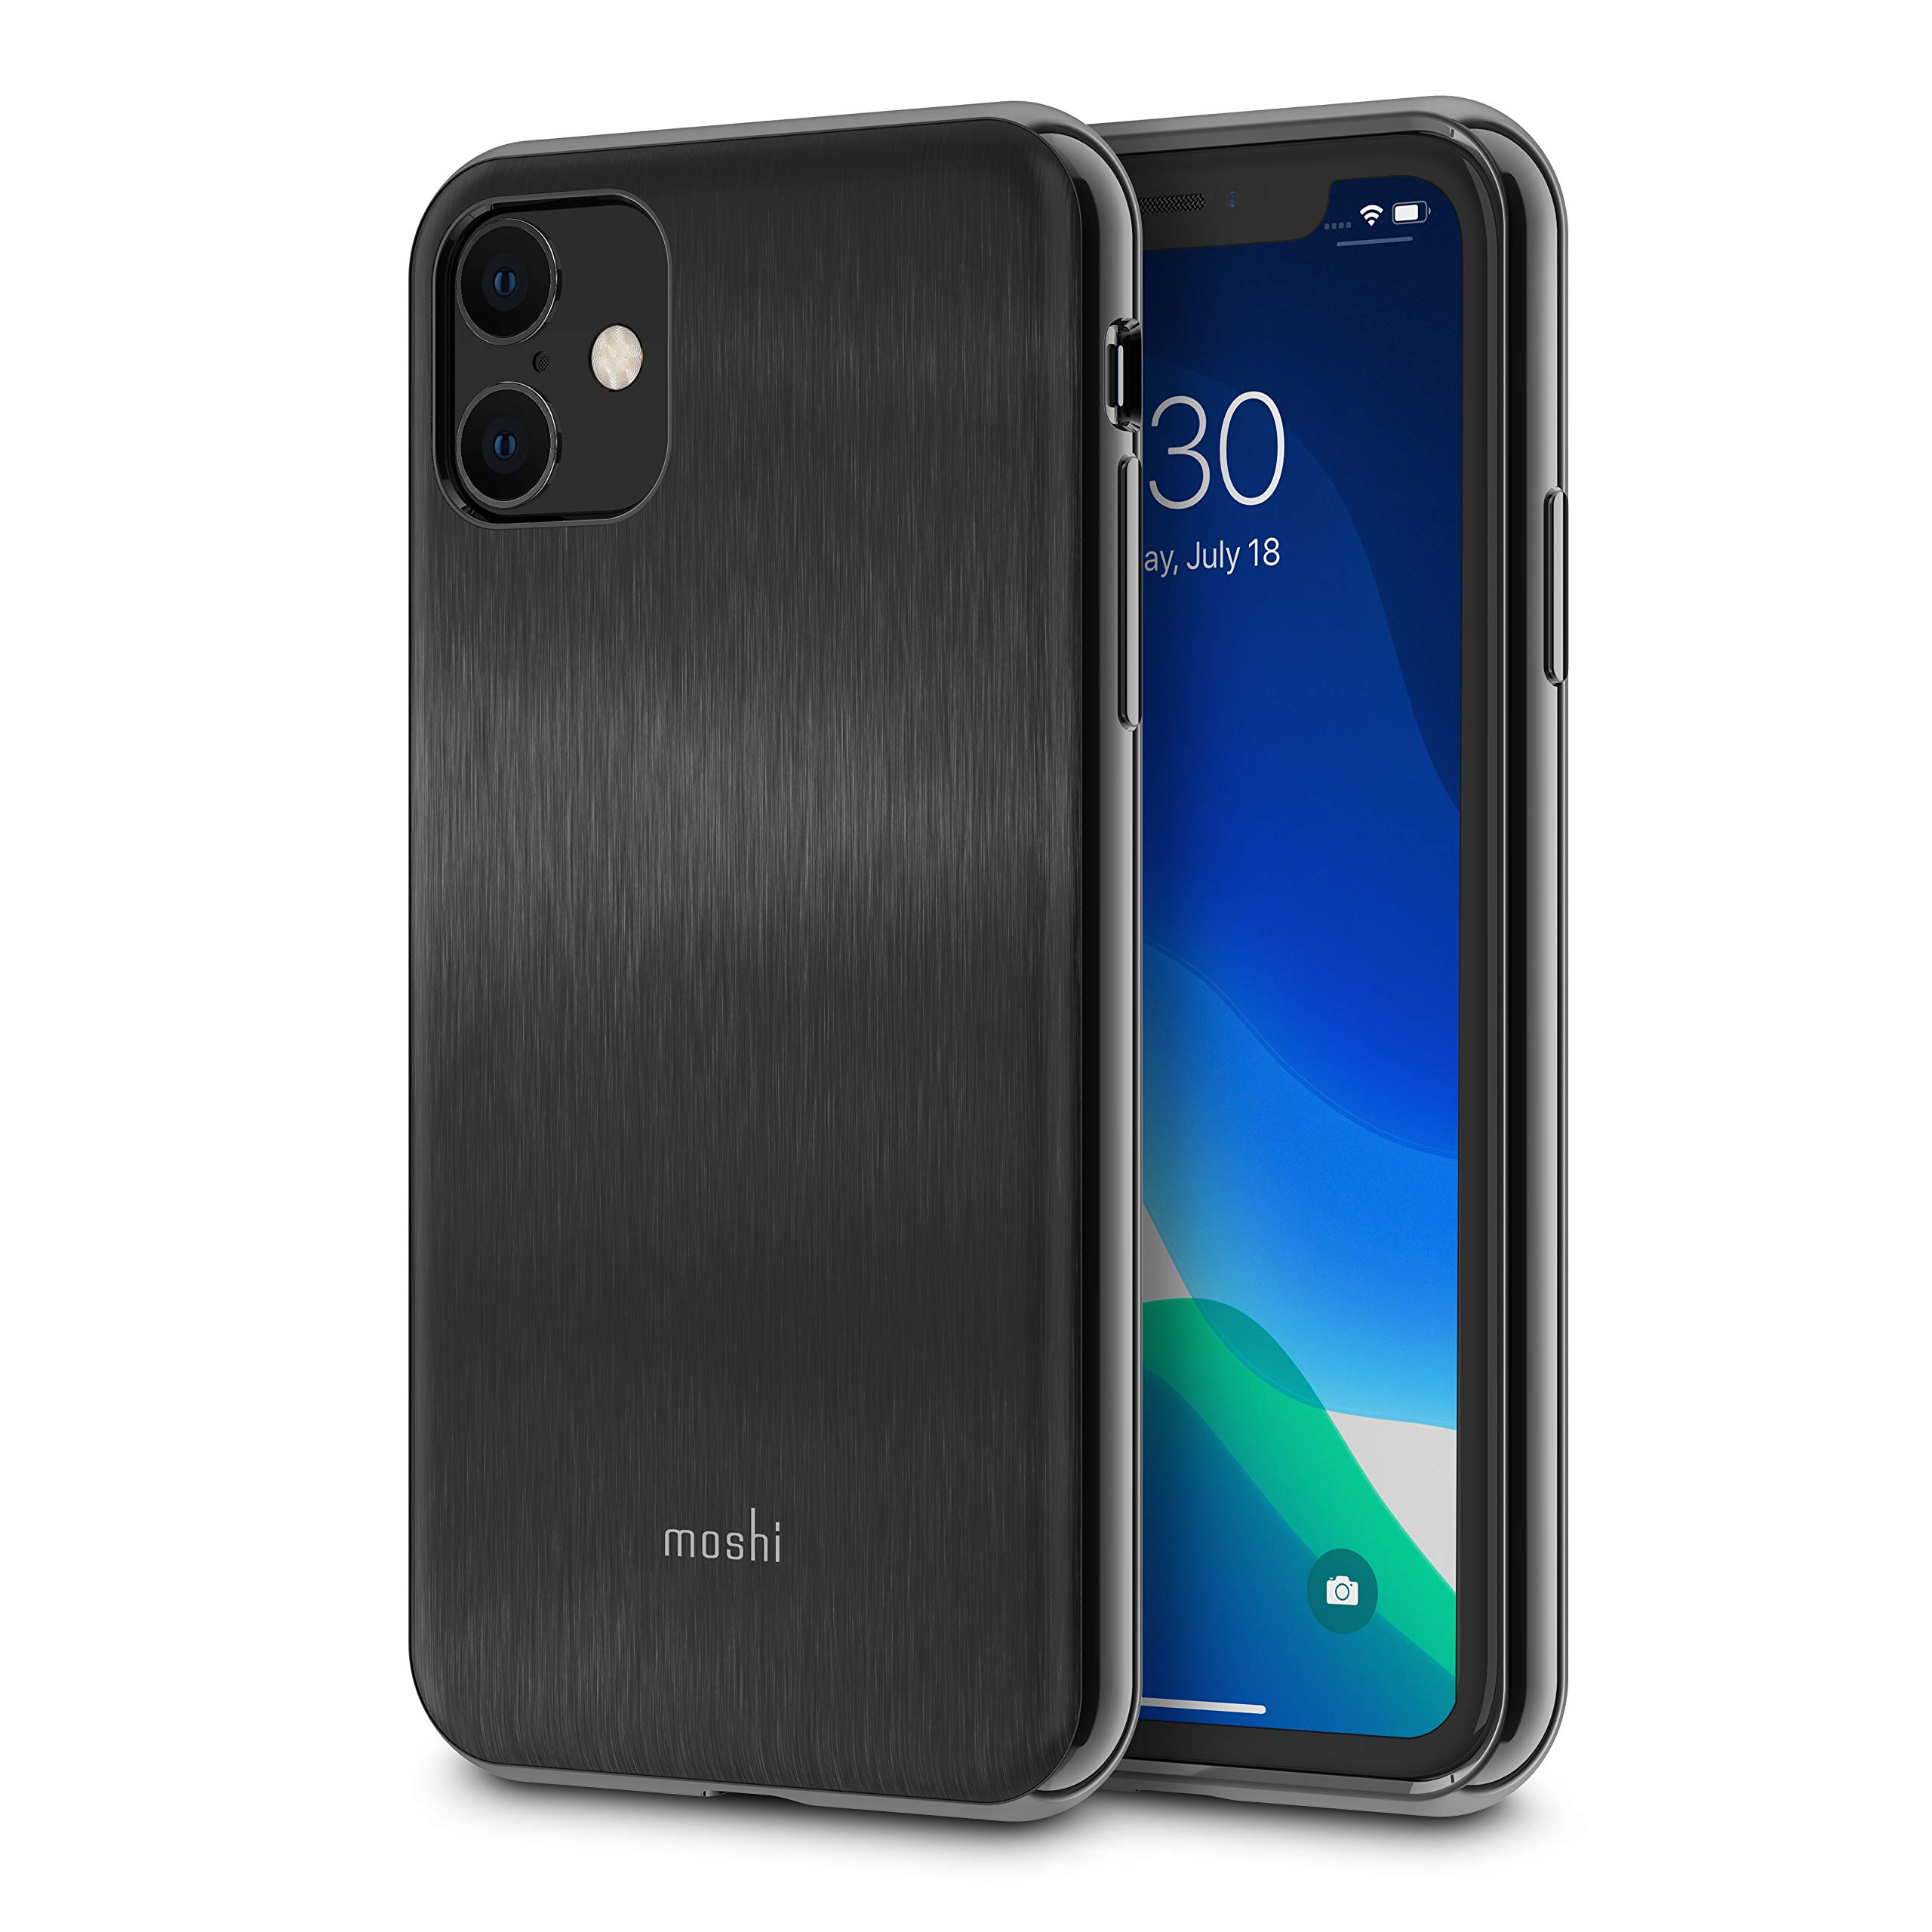 Moshi iGlaze for iPhone 11 Case 6.1-inch, Military Drop Protection, Sleek Phone Cover for iPhone 11, Armour Black